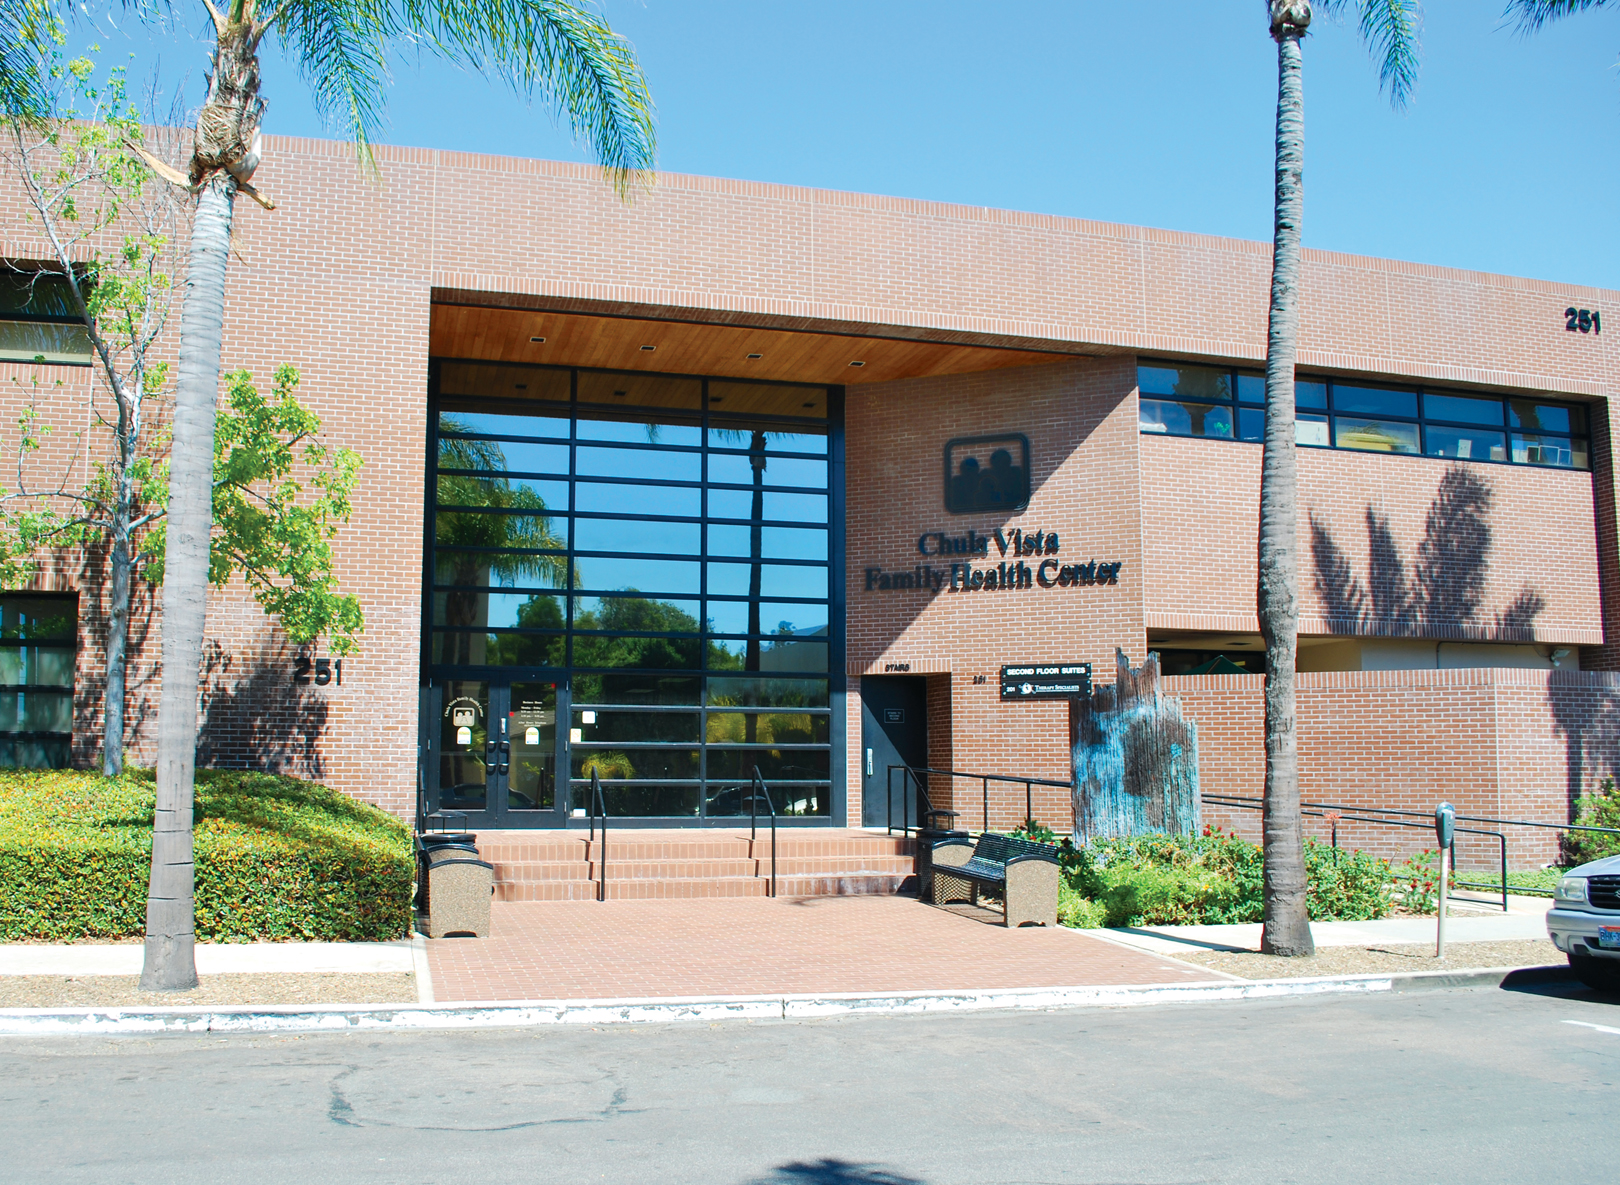 primary care doctors san diego Chula Vista Family Health Center